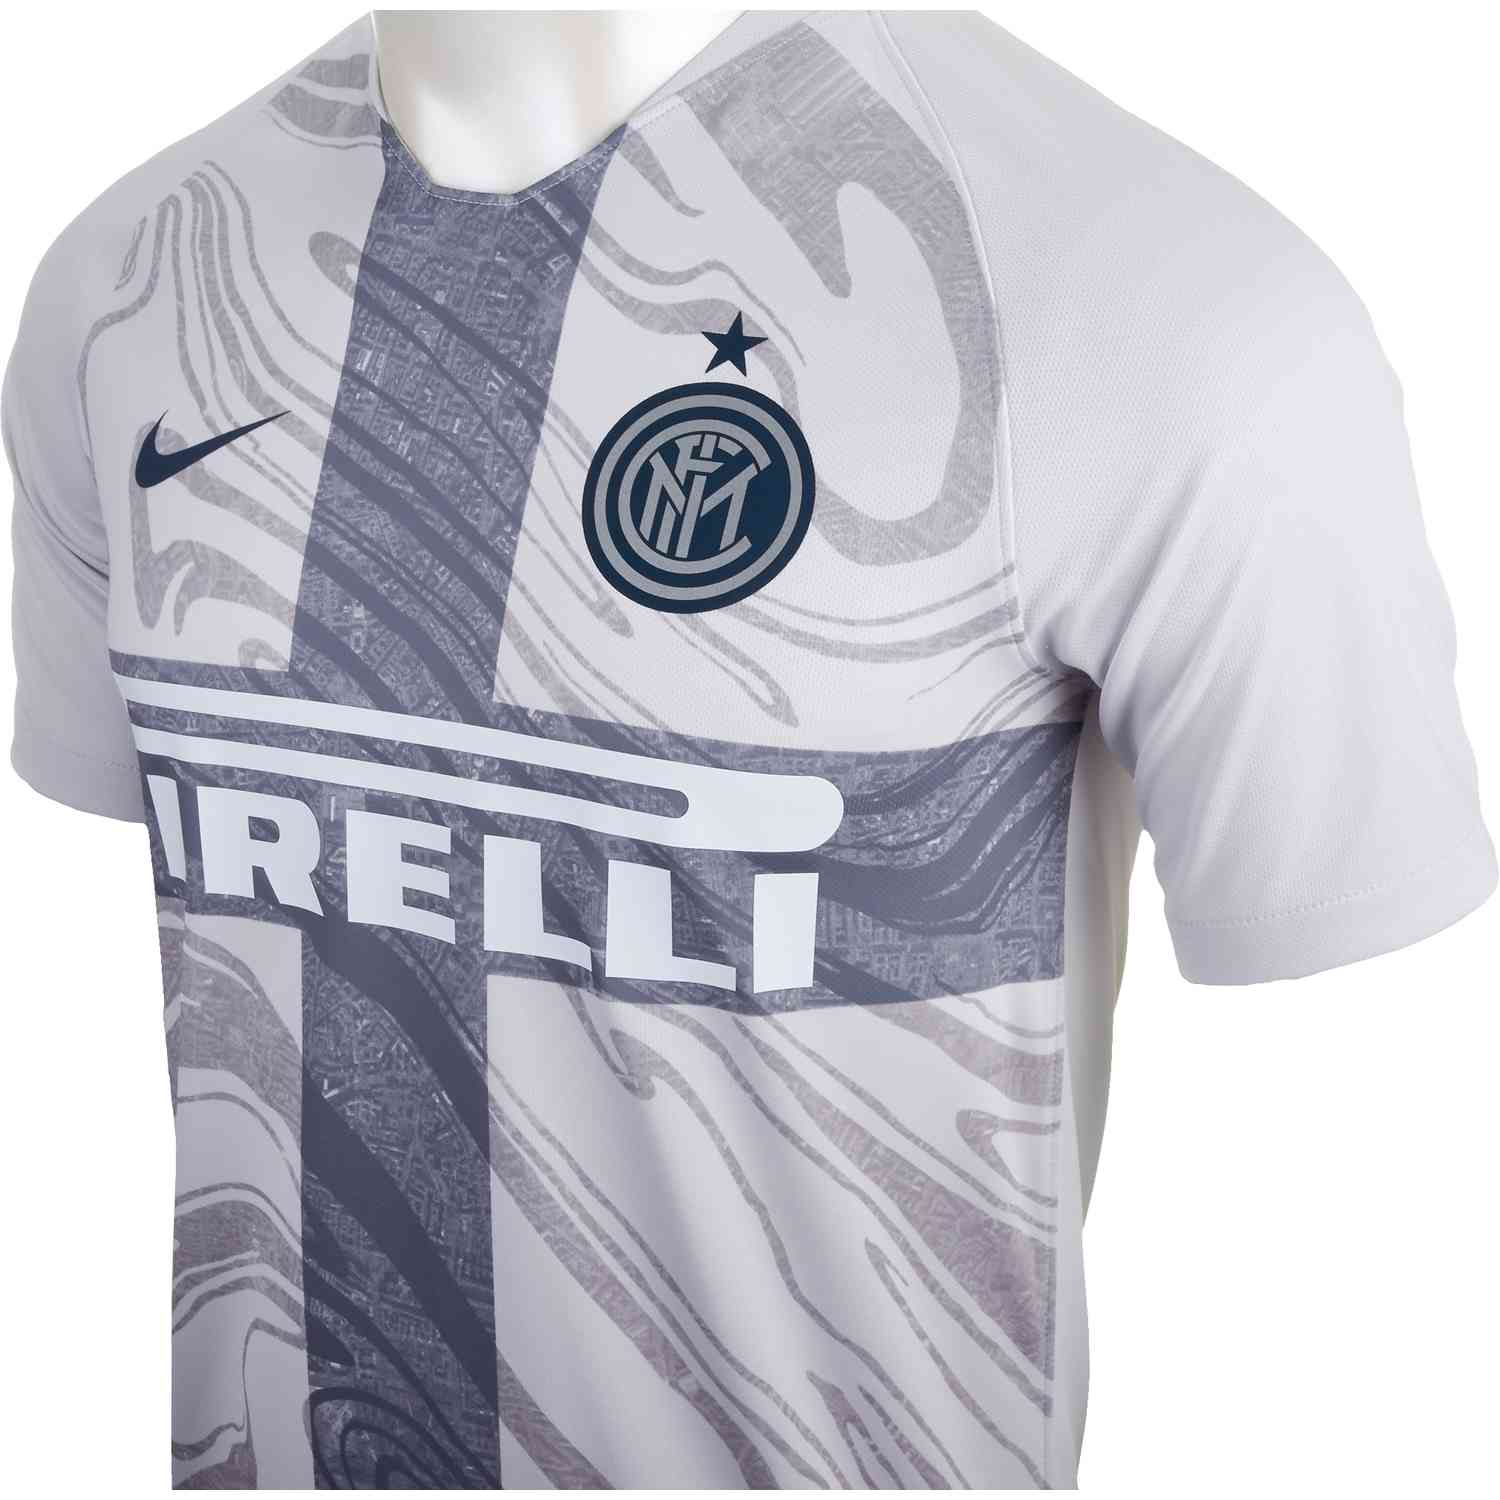 huge discount 691f4 0c317 Nike Inter Milan 3rd Jersey - Vast Grey/Thunder Blue - SoccerPro